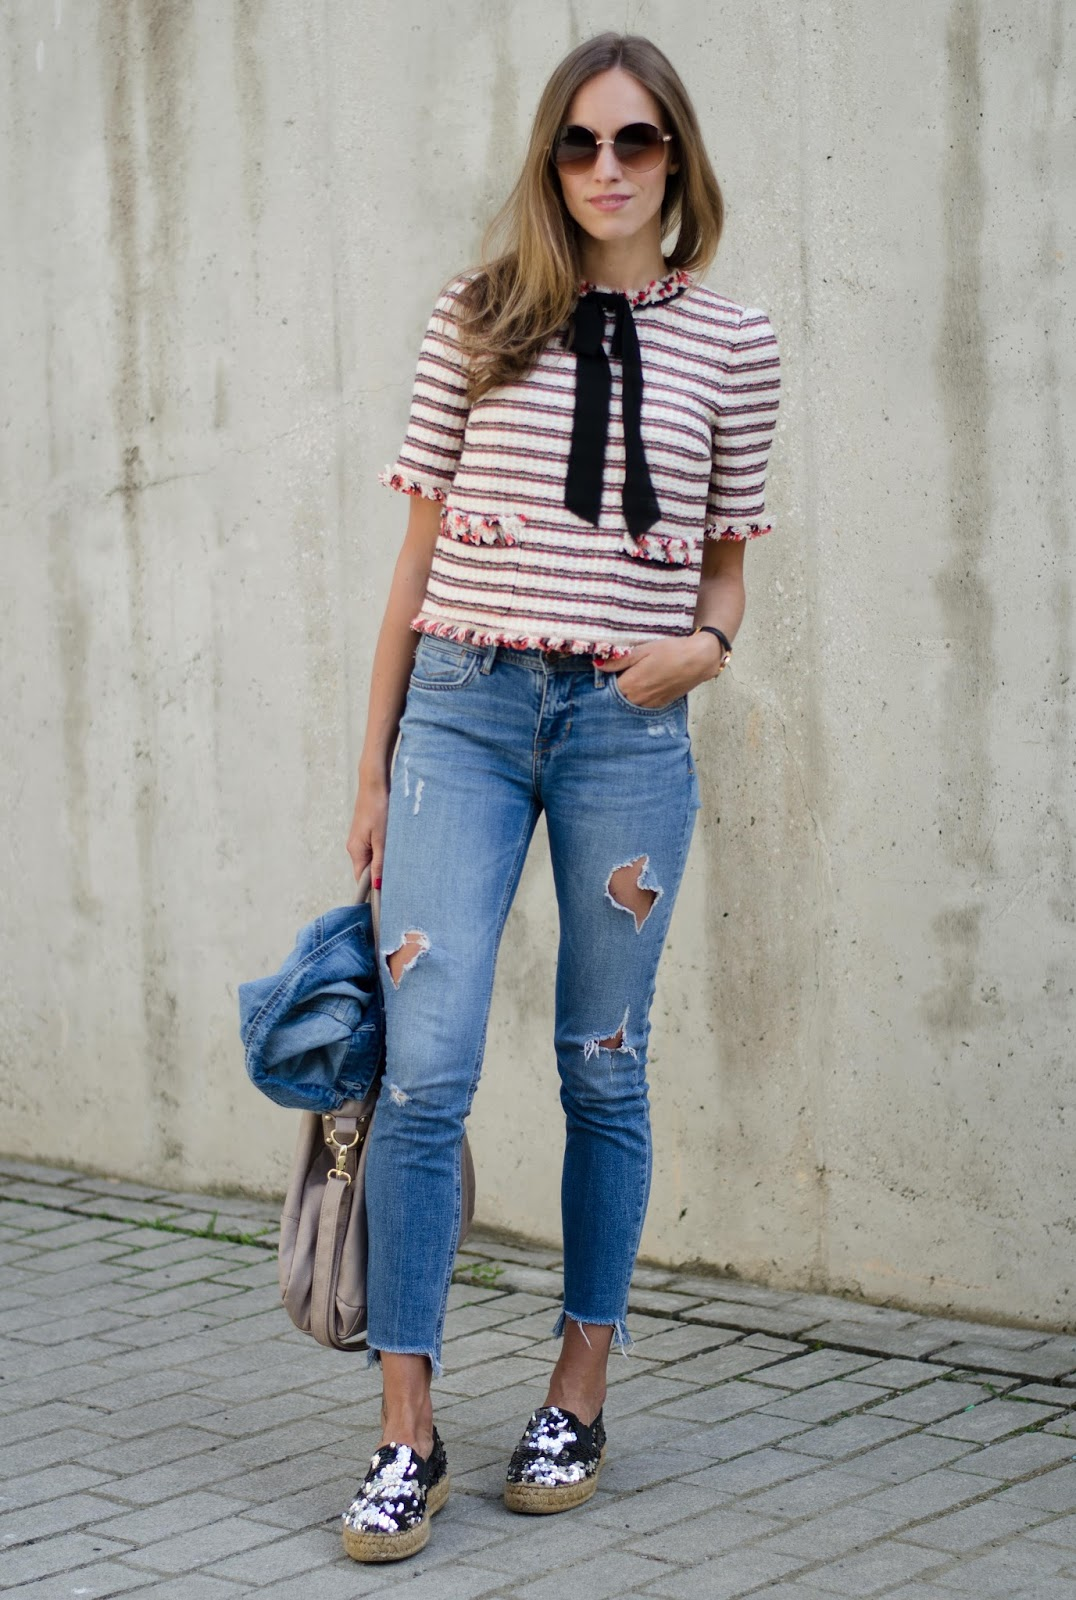 kristjaana mere striped bow top frayed jeans sequin espadrilles outfit